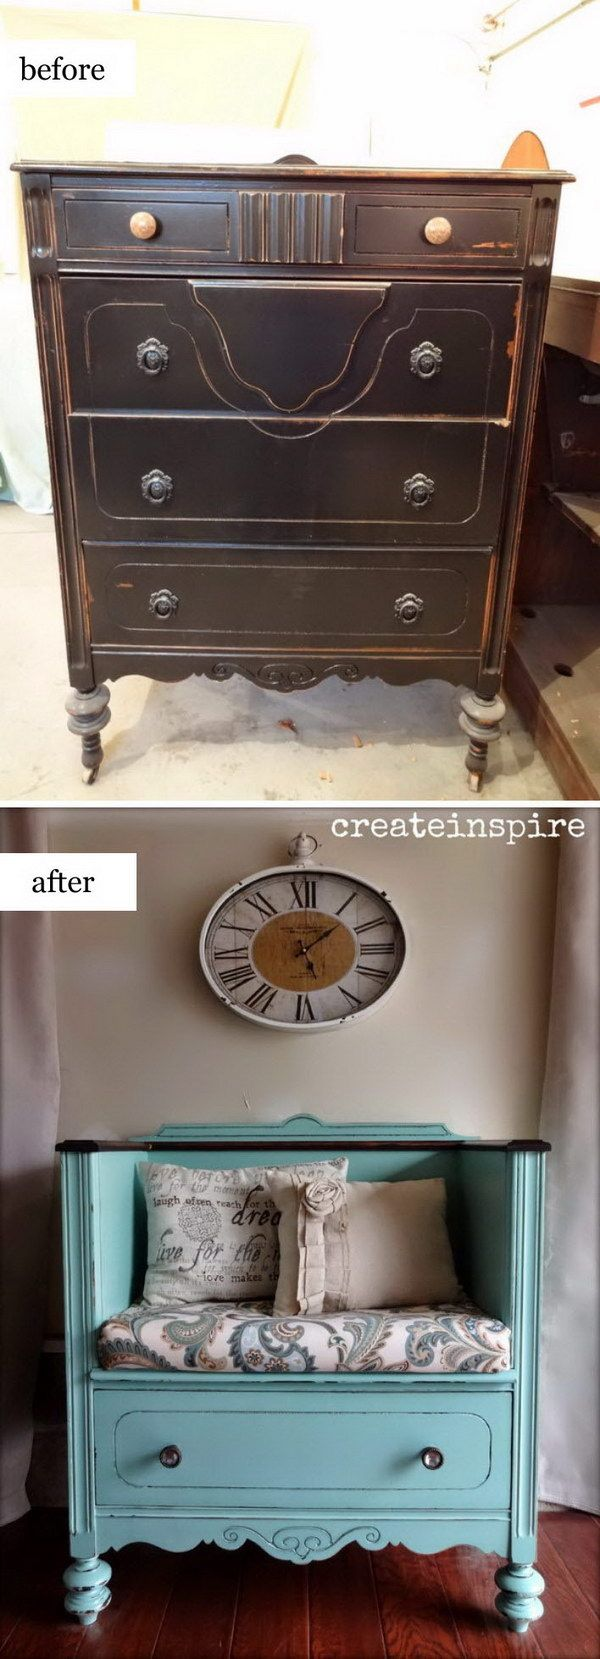 repurpose old furniture. 40 Awesome Makeovers: Clever Ways With Tutorials To Repurpose Old Furniture K